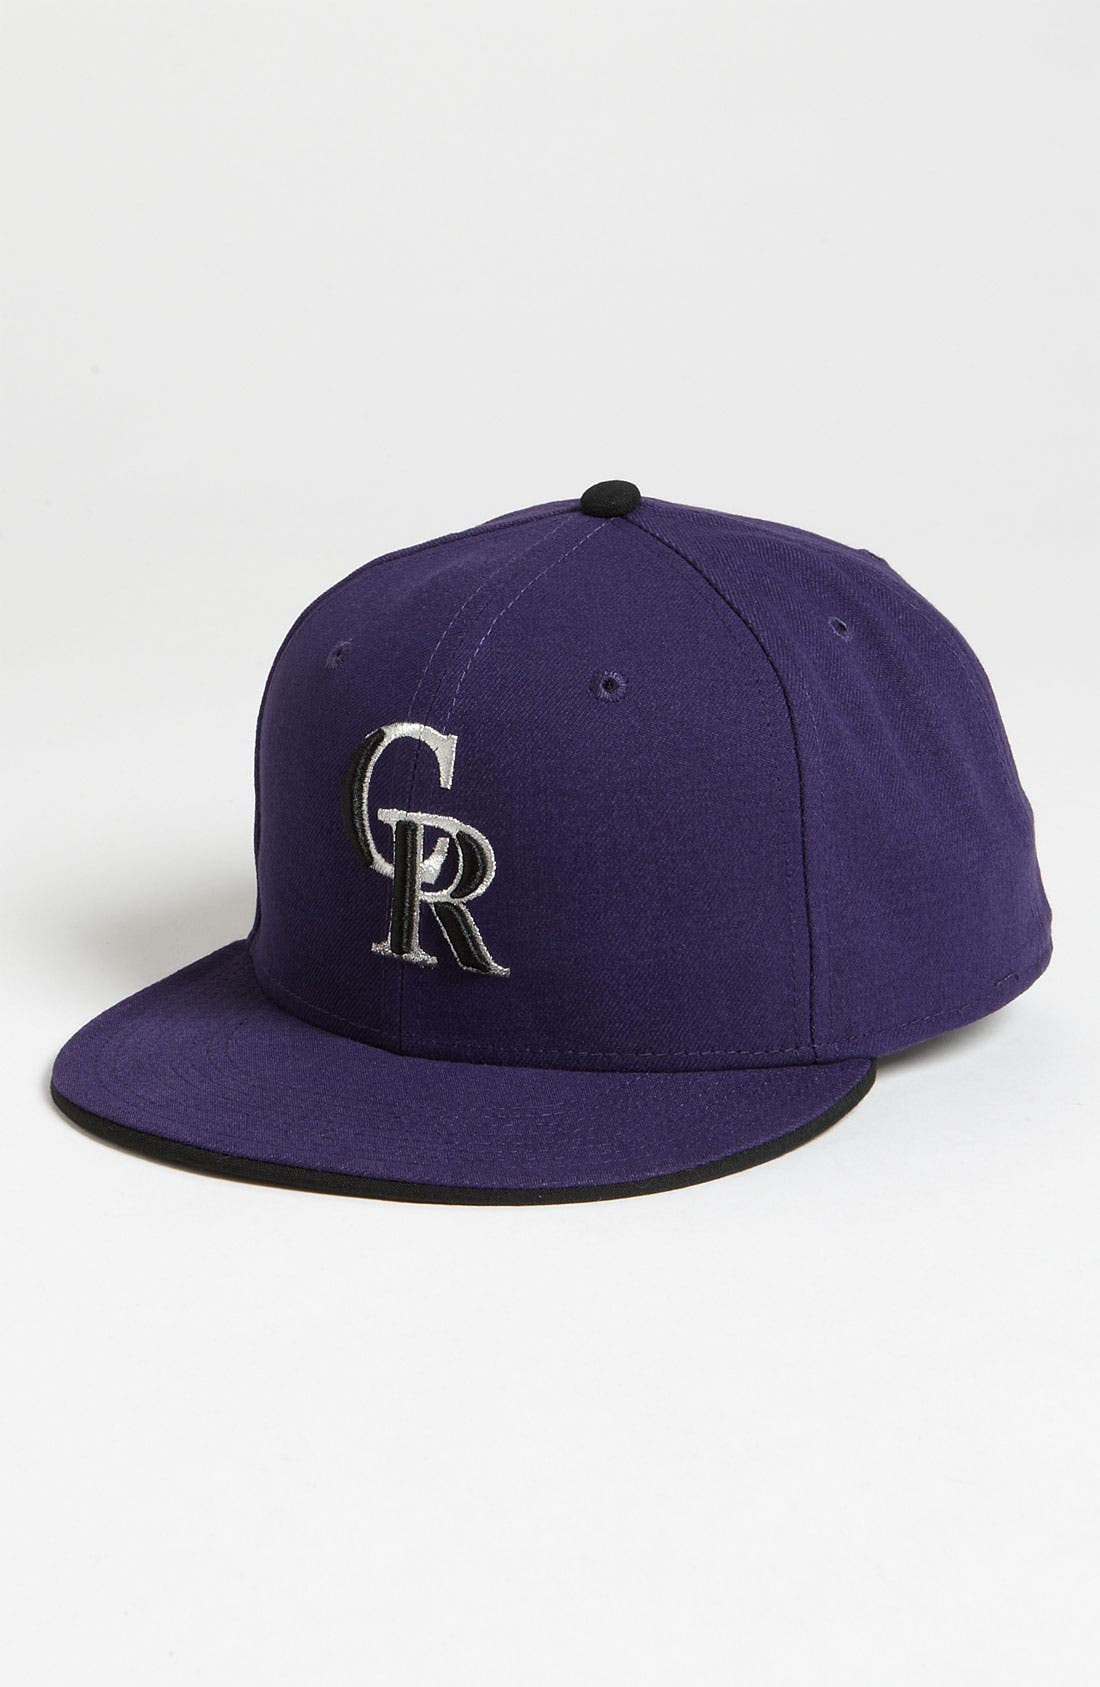 Main Image - New Era Cap 'Colorado Rockies' Baseball Cap